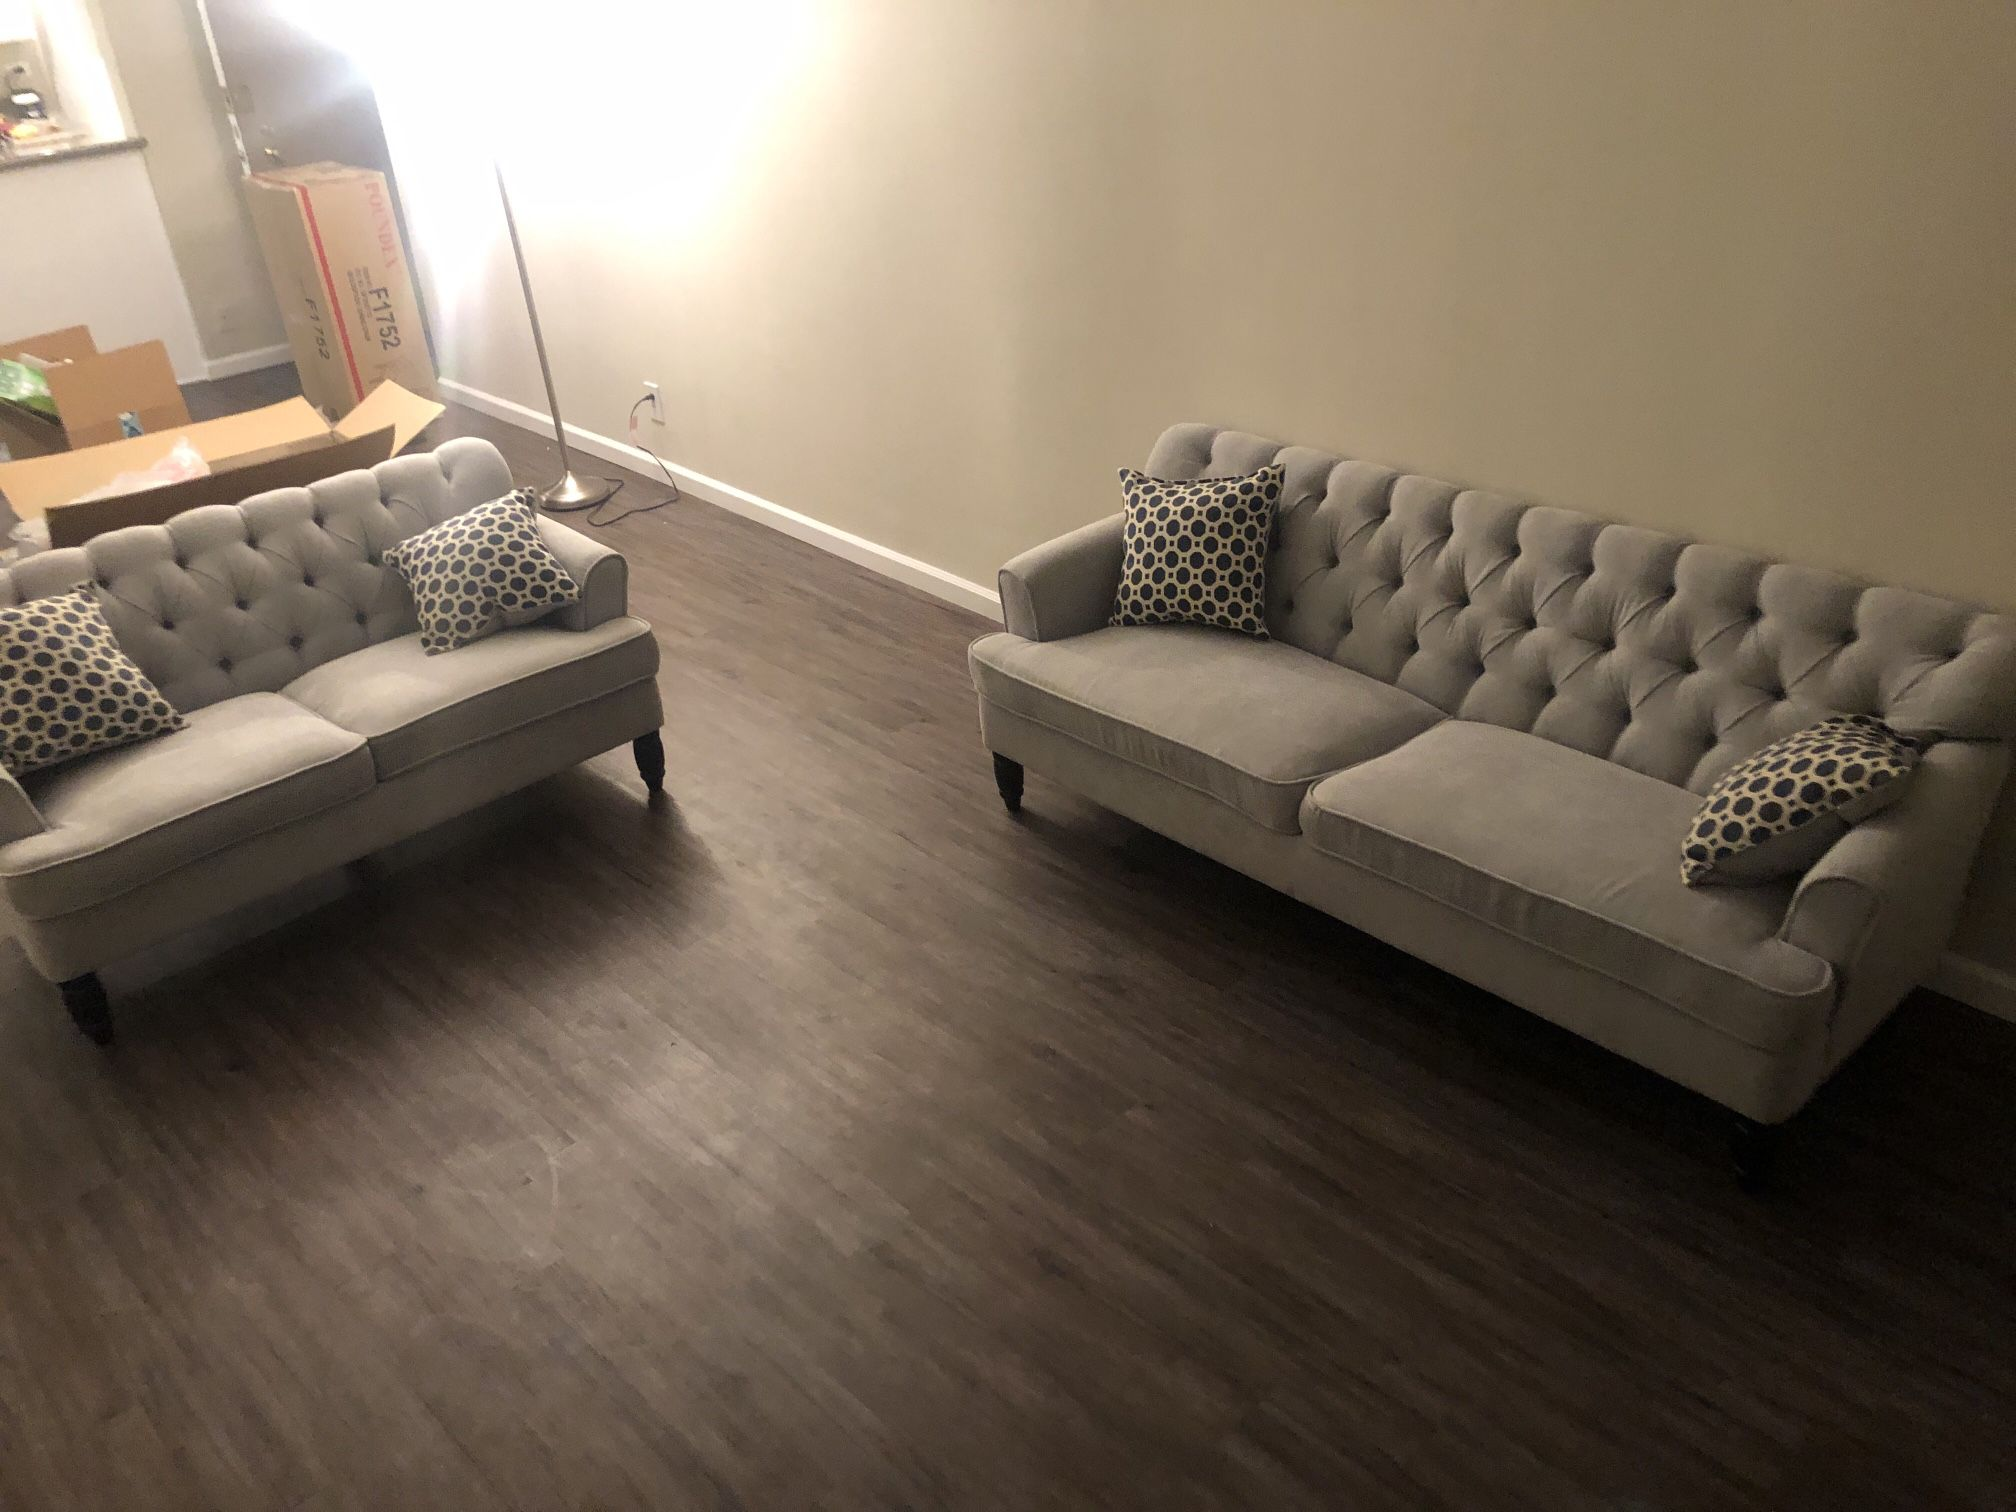 New Tufted Couch Loveseat $700 Free Delivery